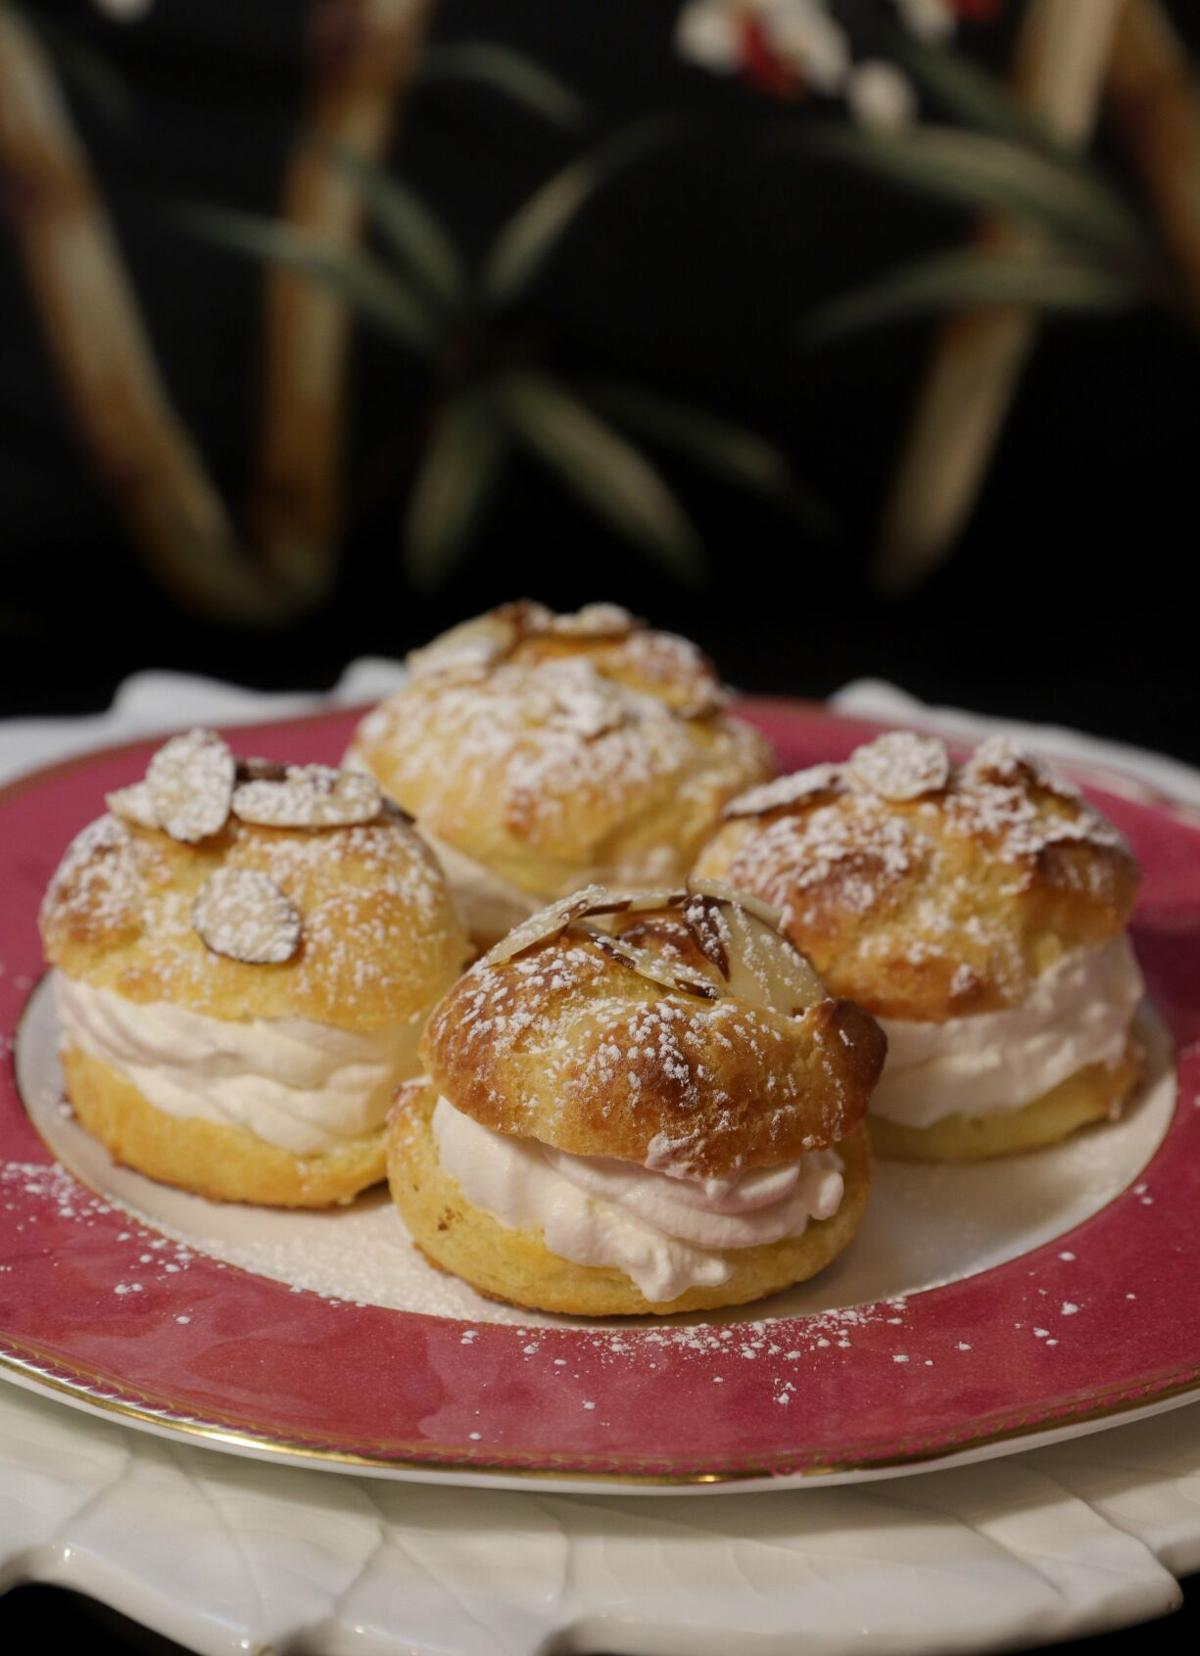 Cream puffs with Chantilly Cream, made with pate a choux dough.